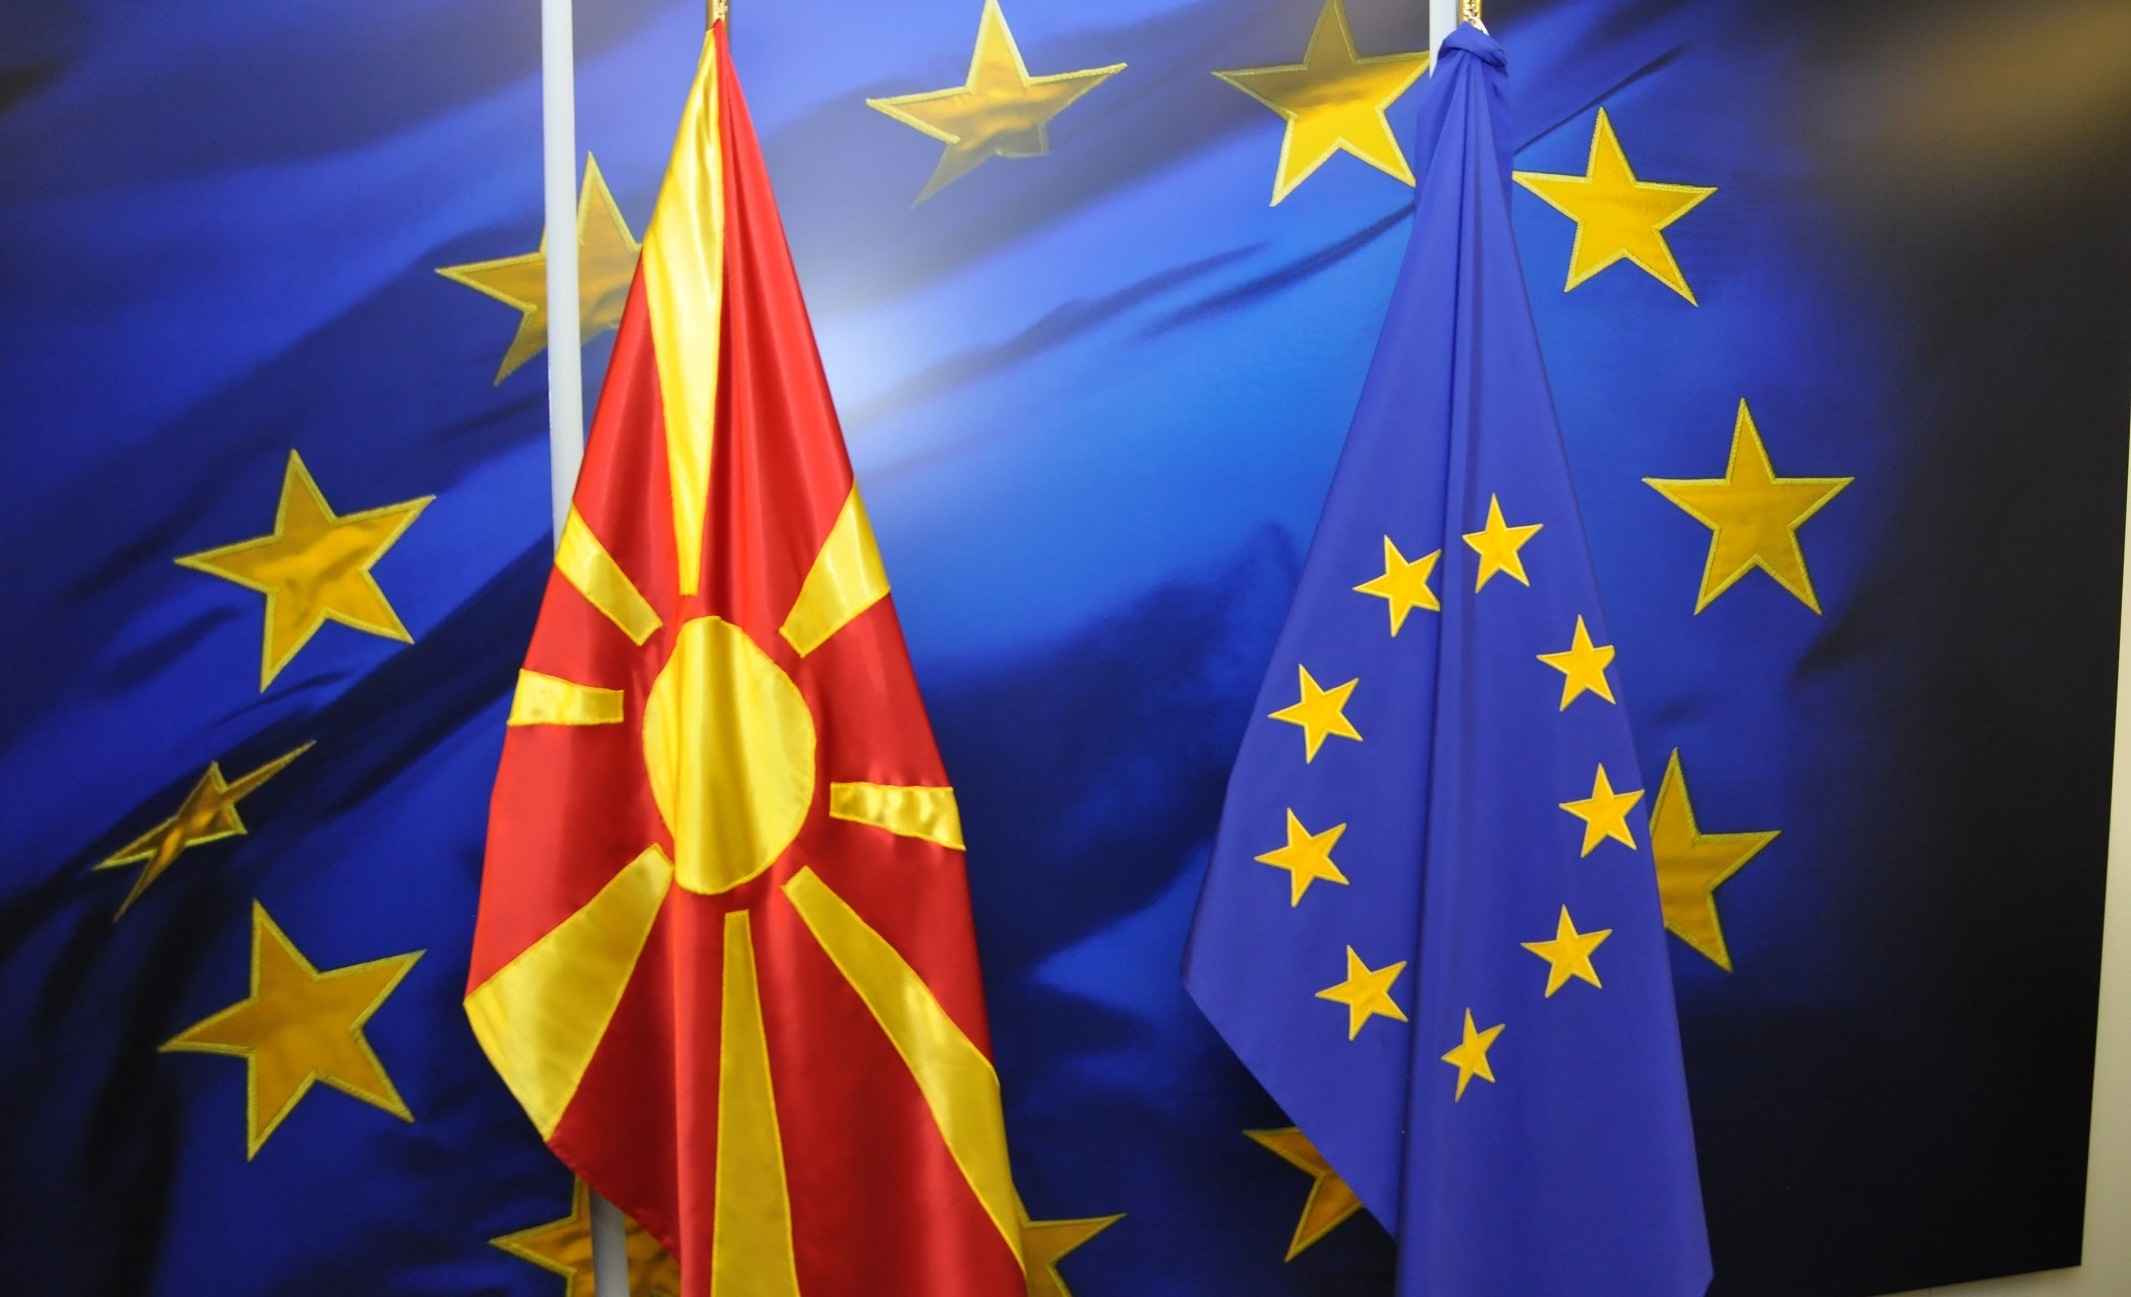 Skopje is expecting a date for the launch of accession talks